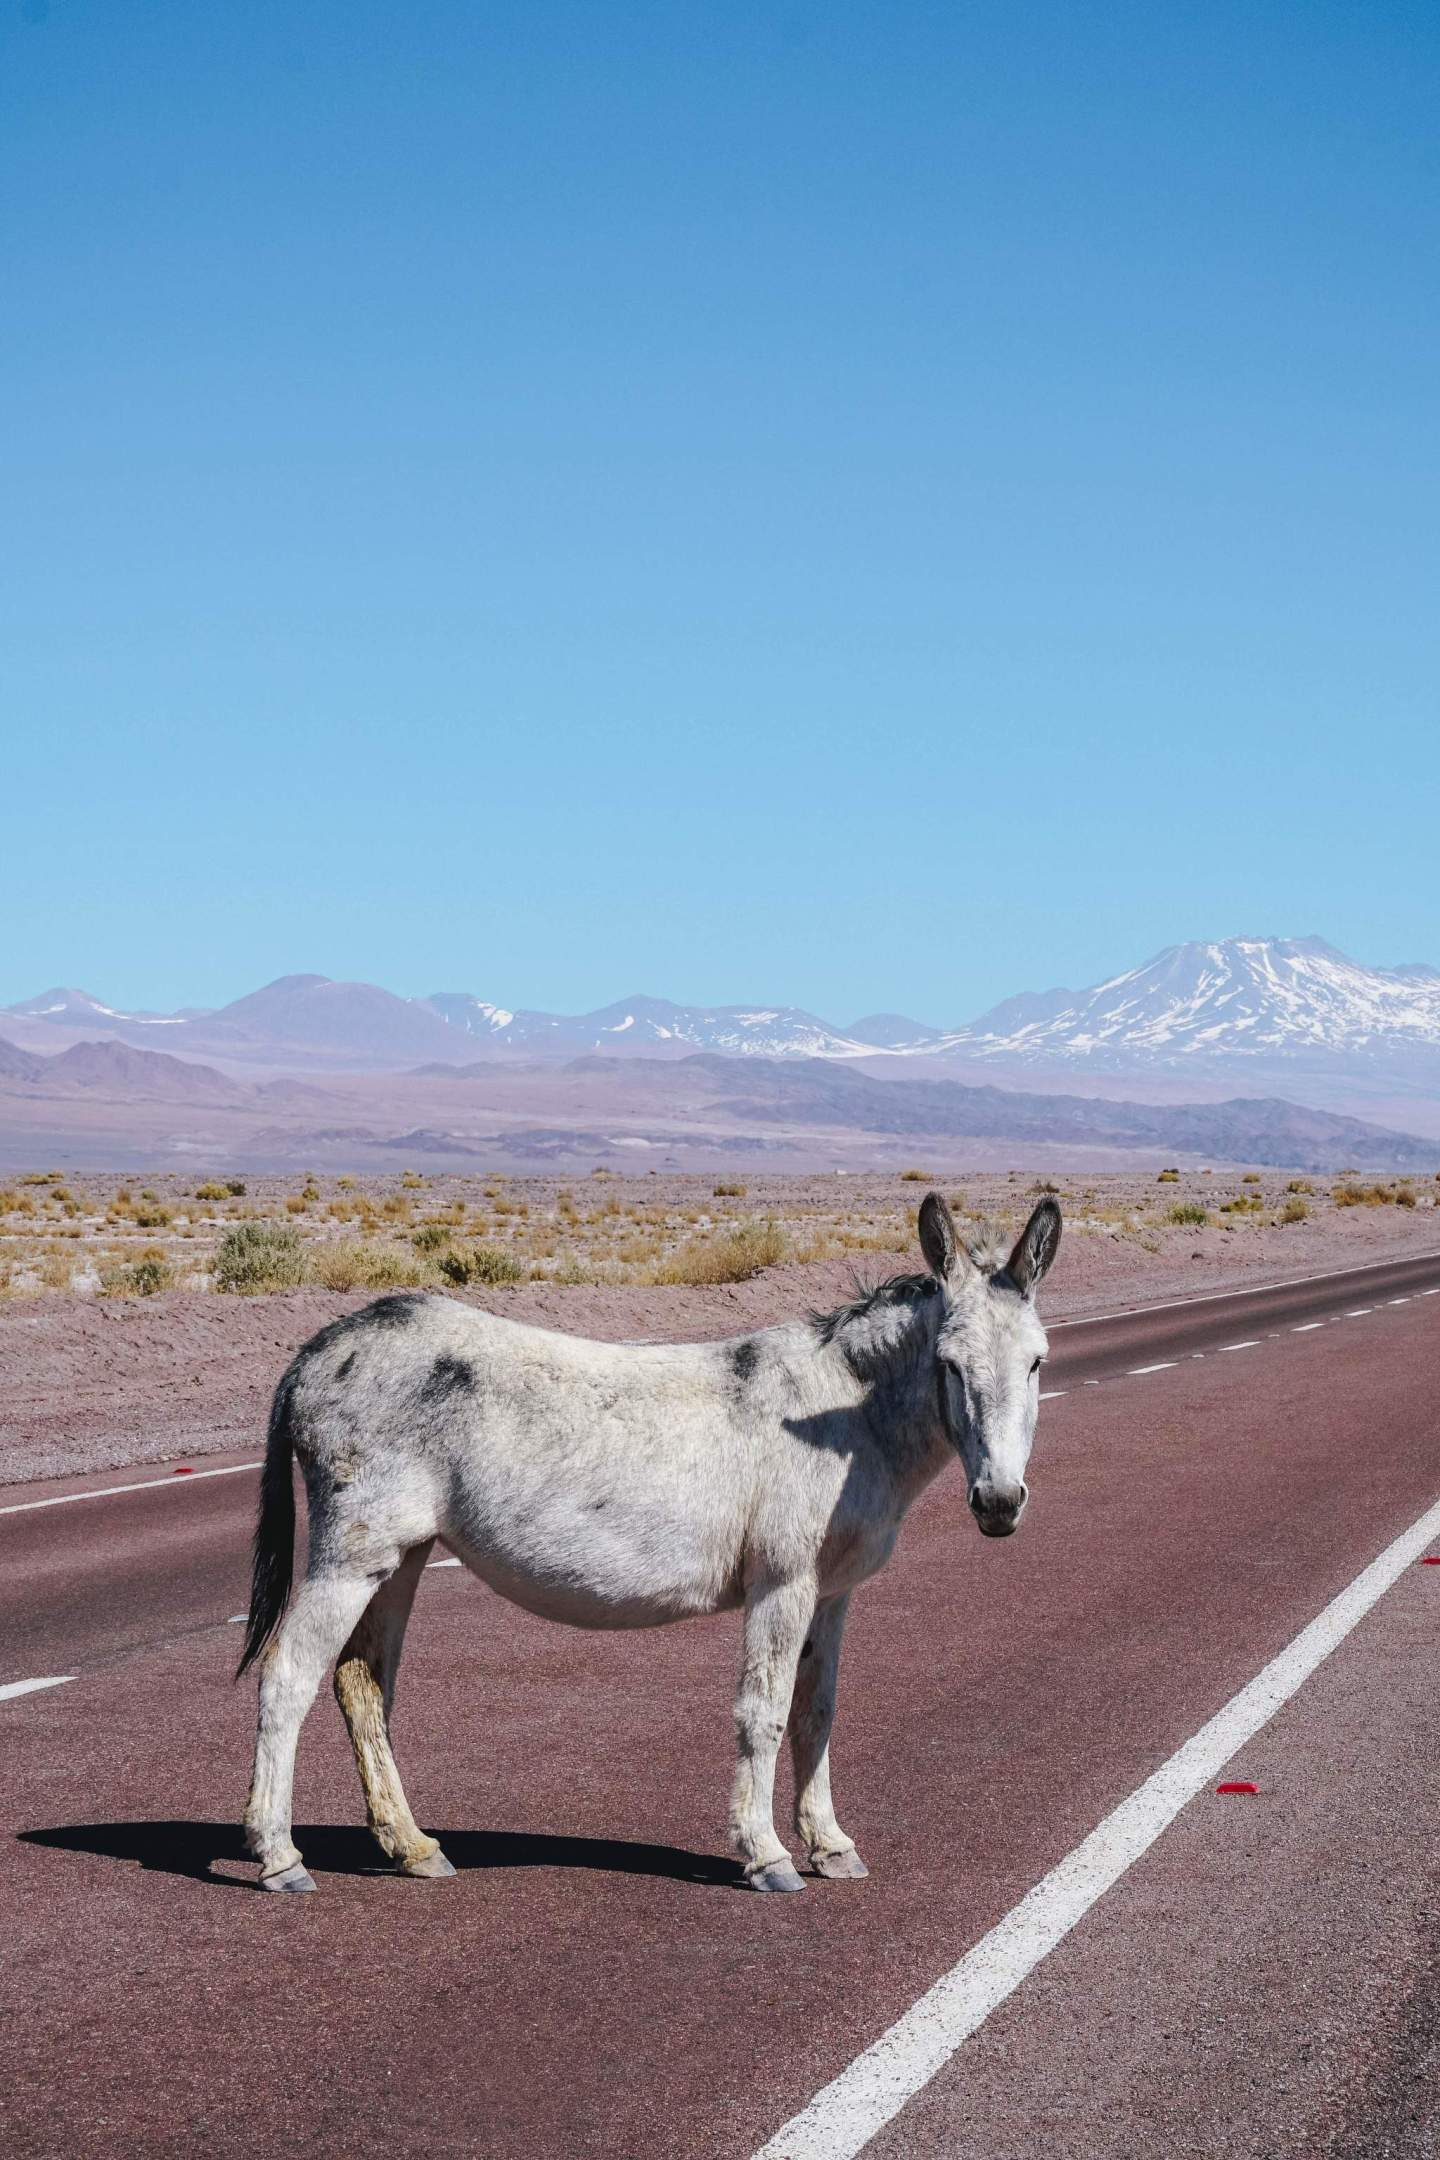 Self-driving guide-to-Atacama-Desert-itinerary-must-see-spots-14